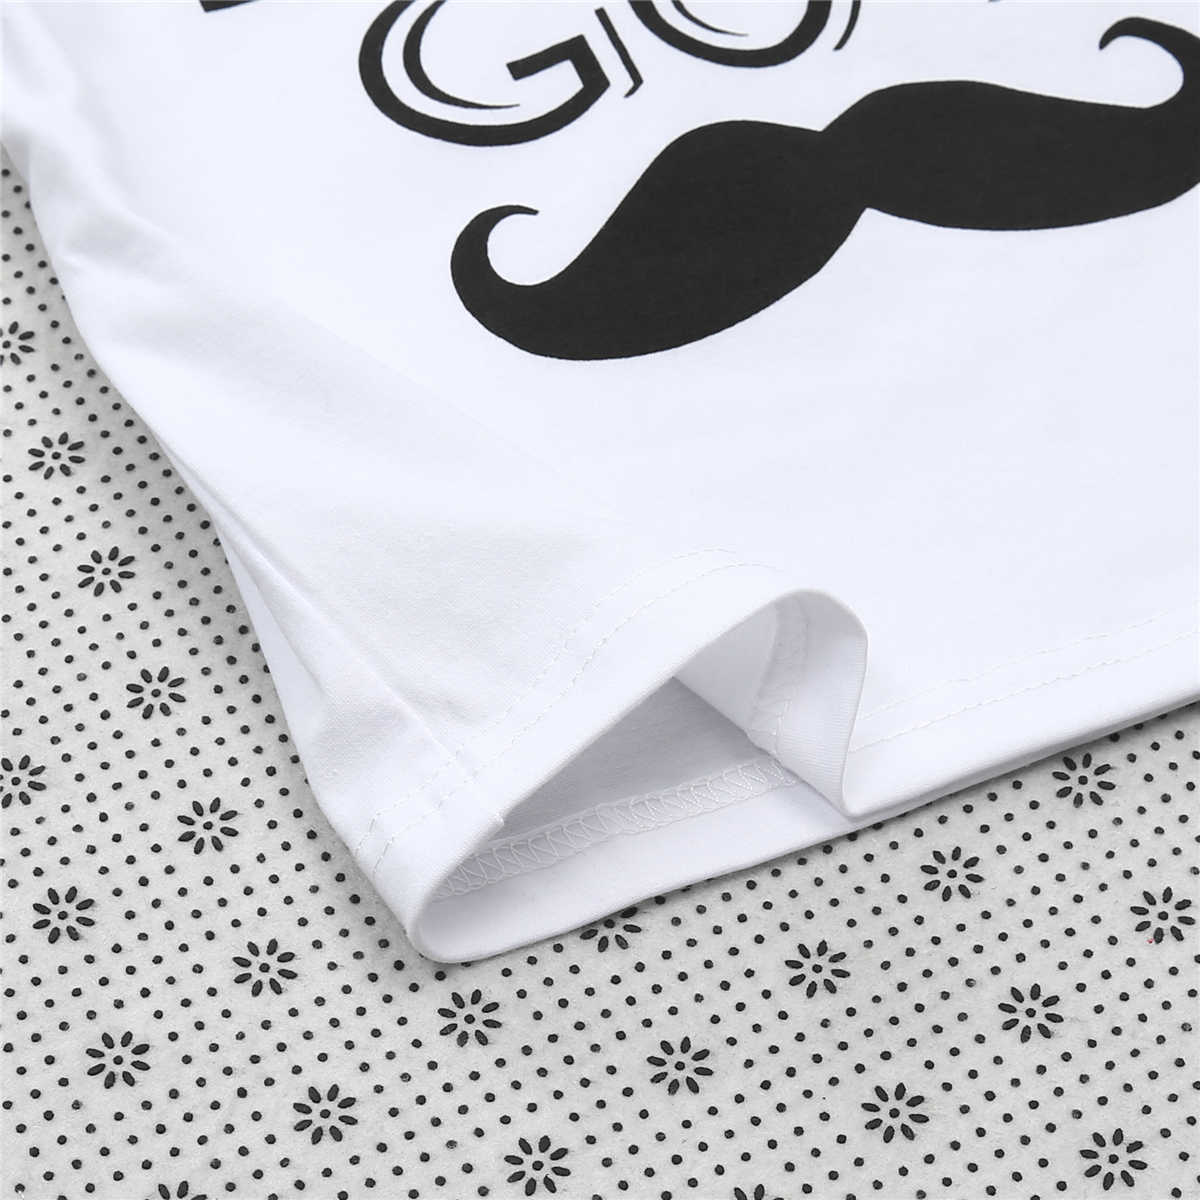 c2d07d89e ... 2018 Brand New Beard Dad T Shirt Father Son T shirt Daddy Favorite  Fathers Day Gift ...